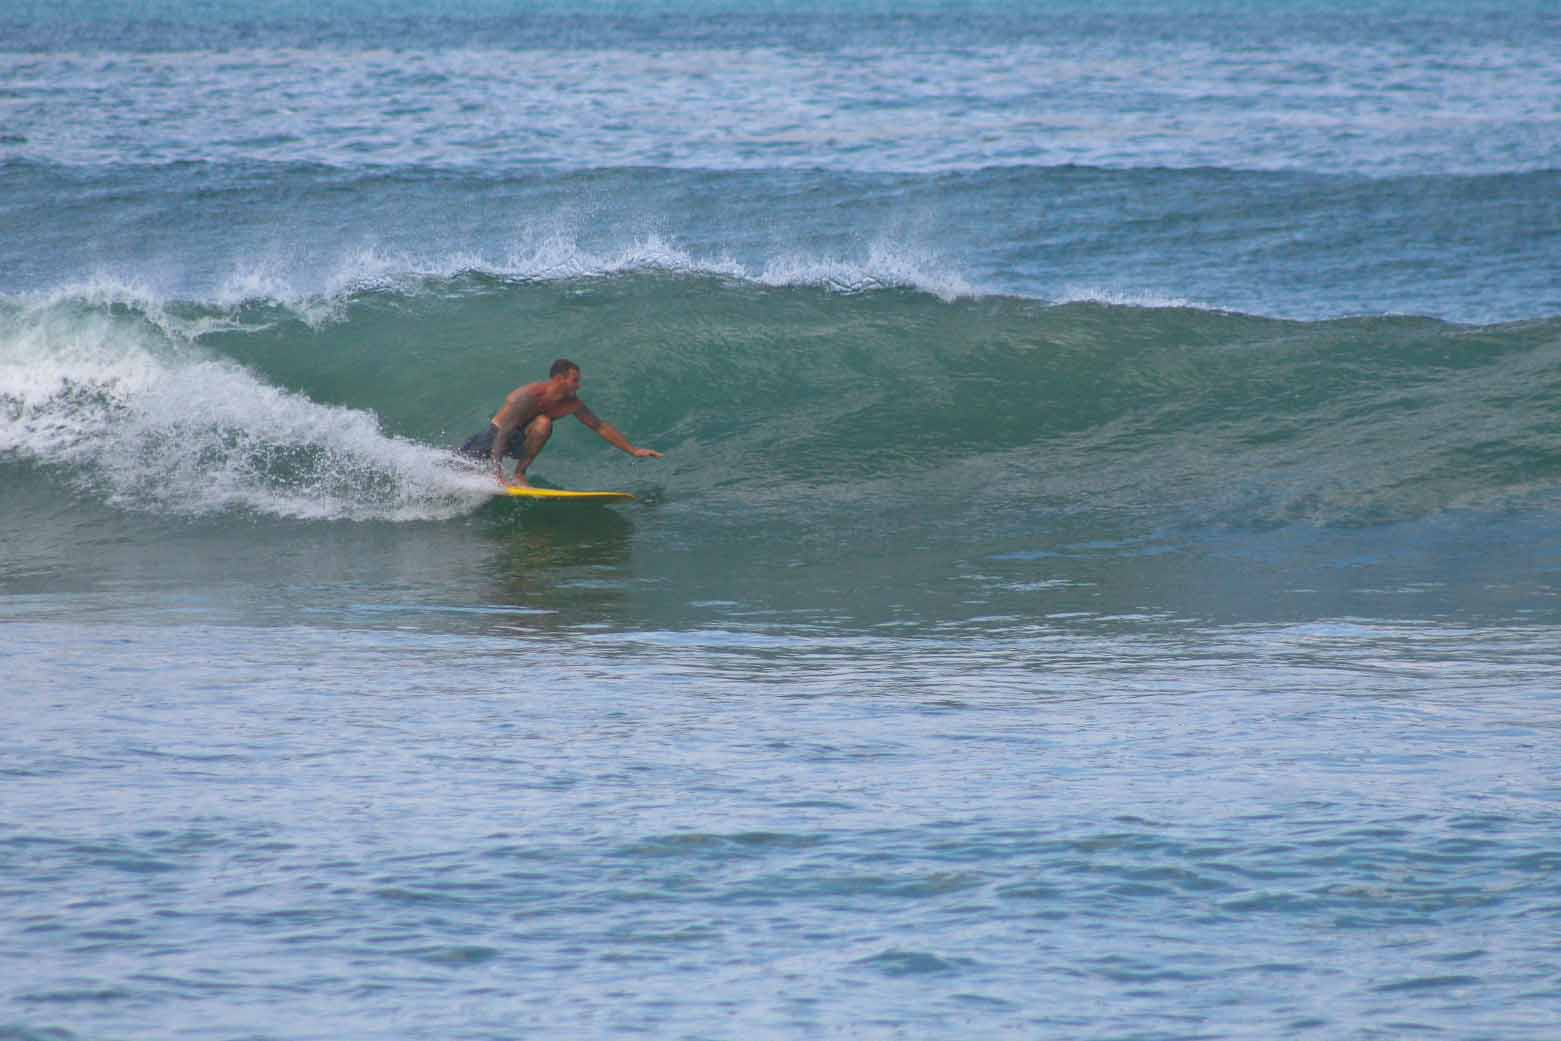 https://property-nicaragua.com/wp/wp-content/uploads/2012/08/Remanso-Waves-5.jpg